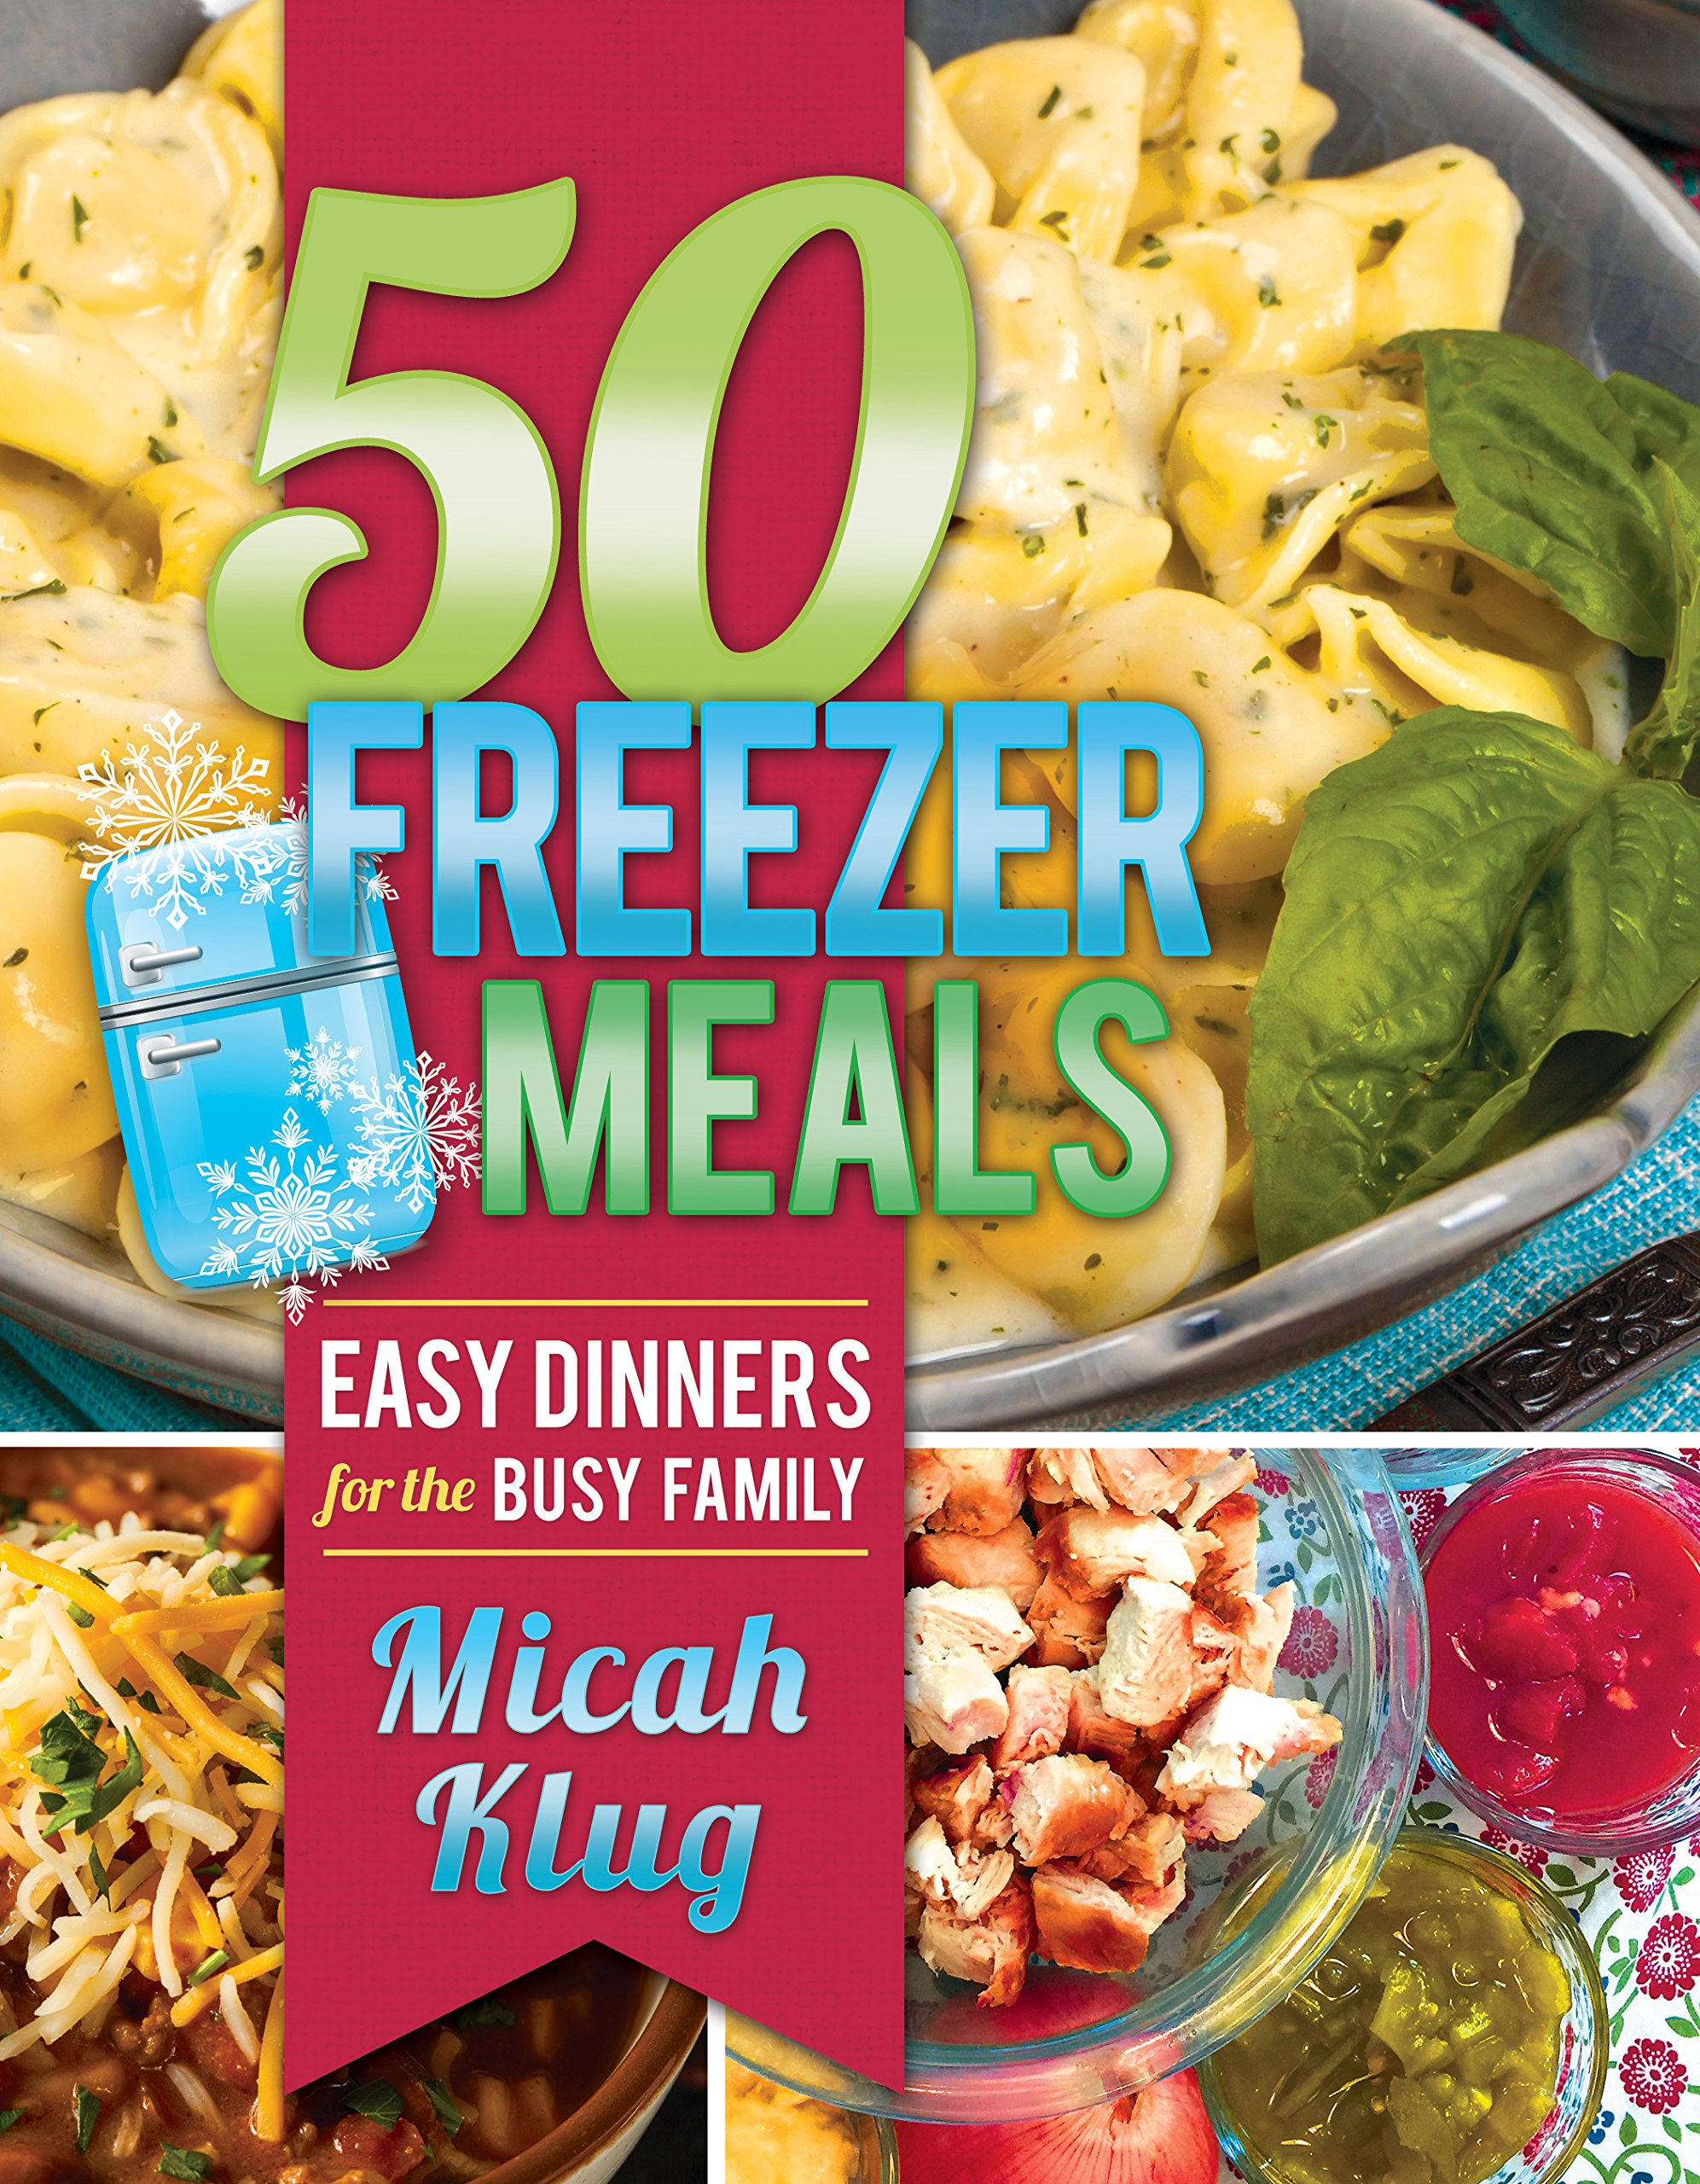 Healthy and easy meals for families